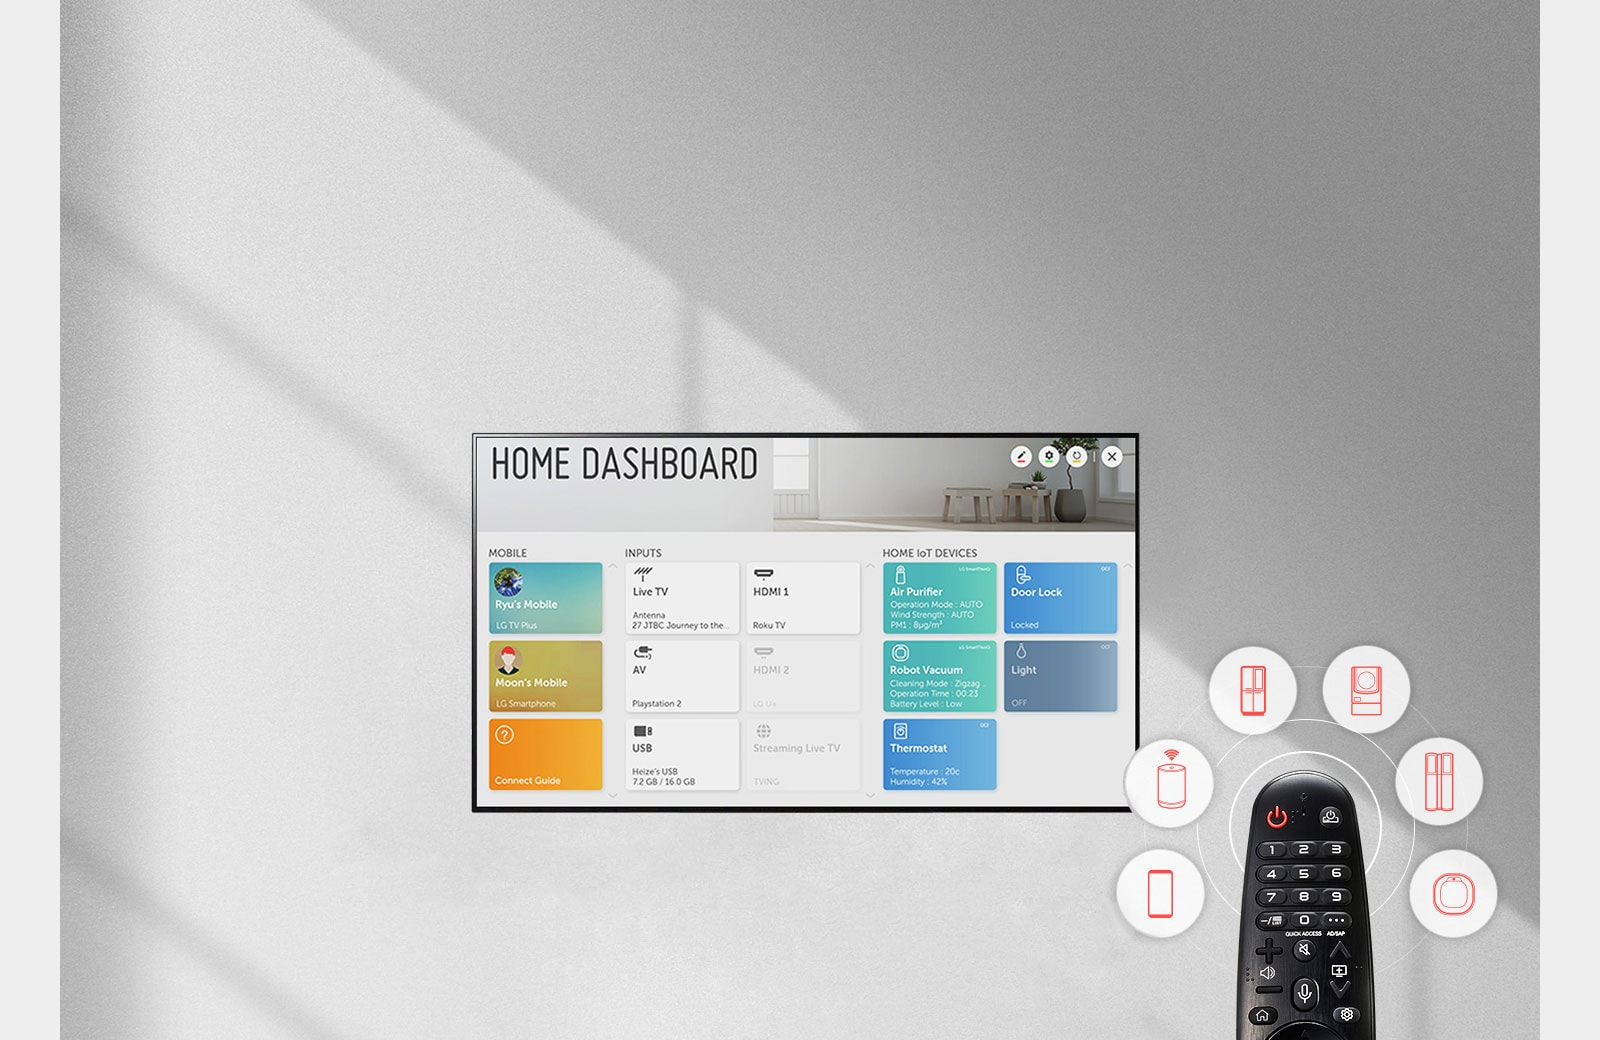 LG Home Dashboard OLED TV